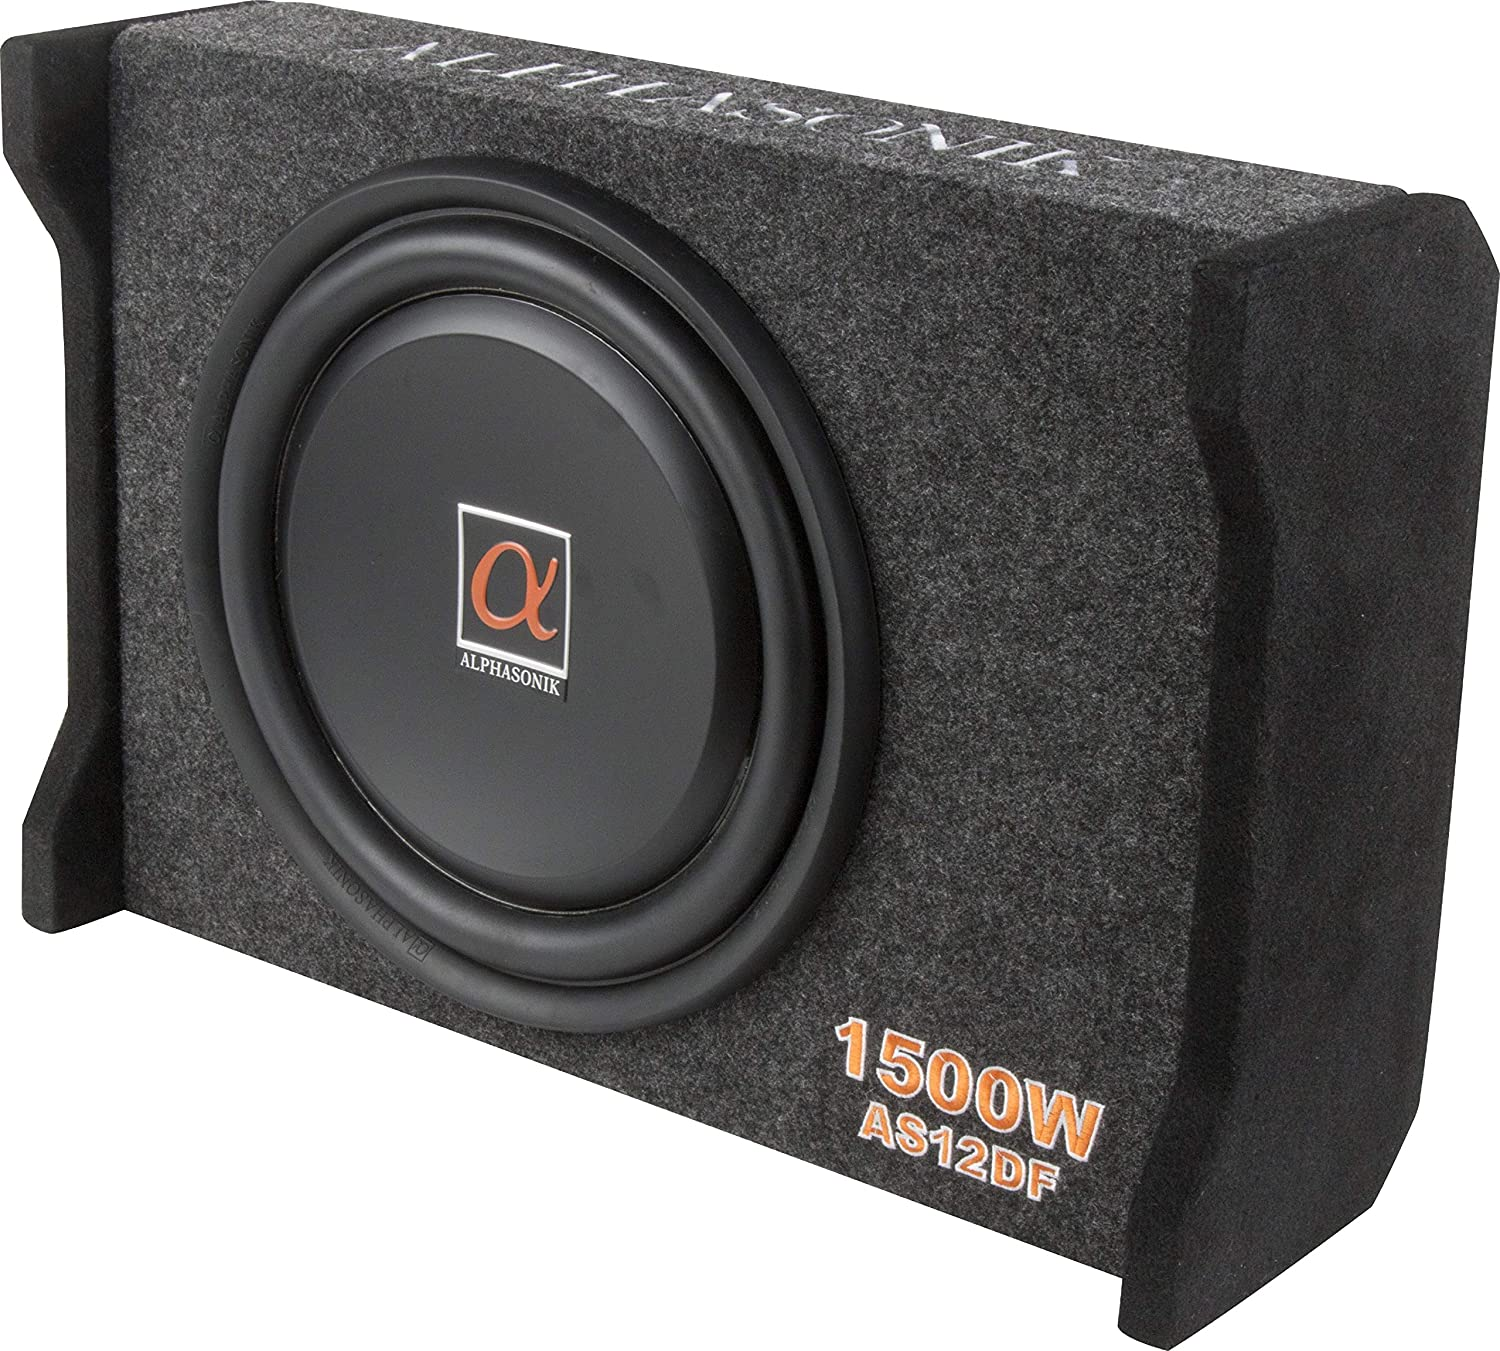 "Alphasonik AS12DF 14.1"" subwoofer for tight spaces"